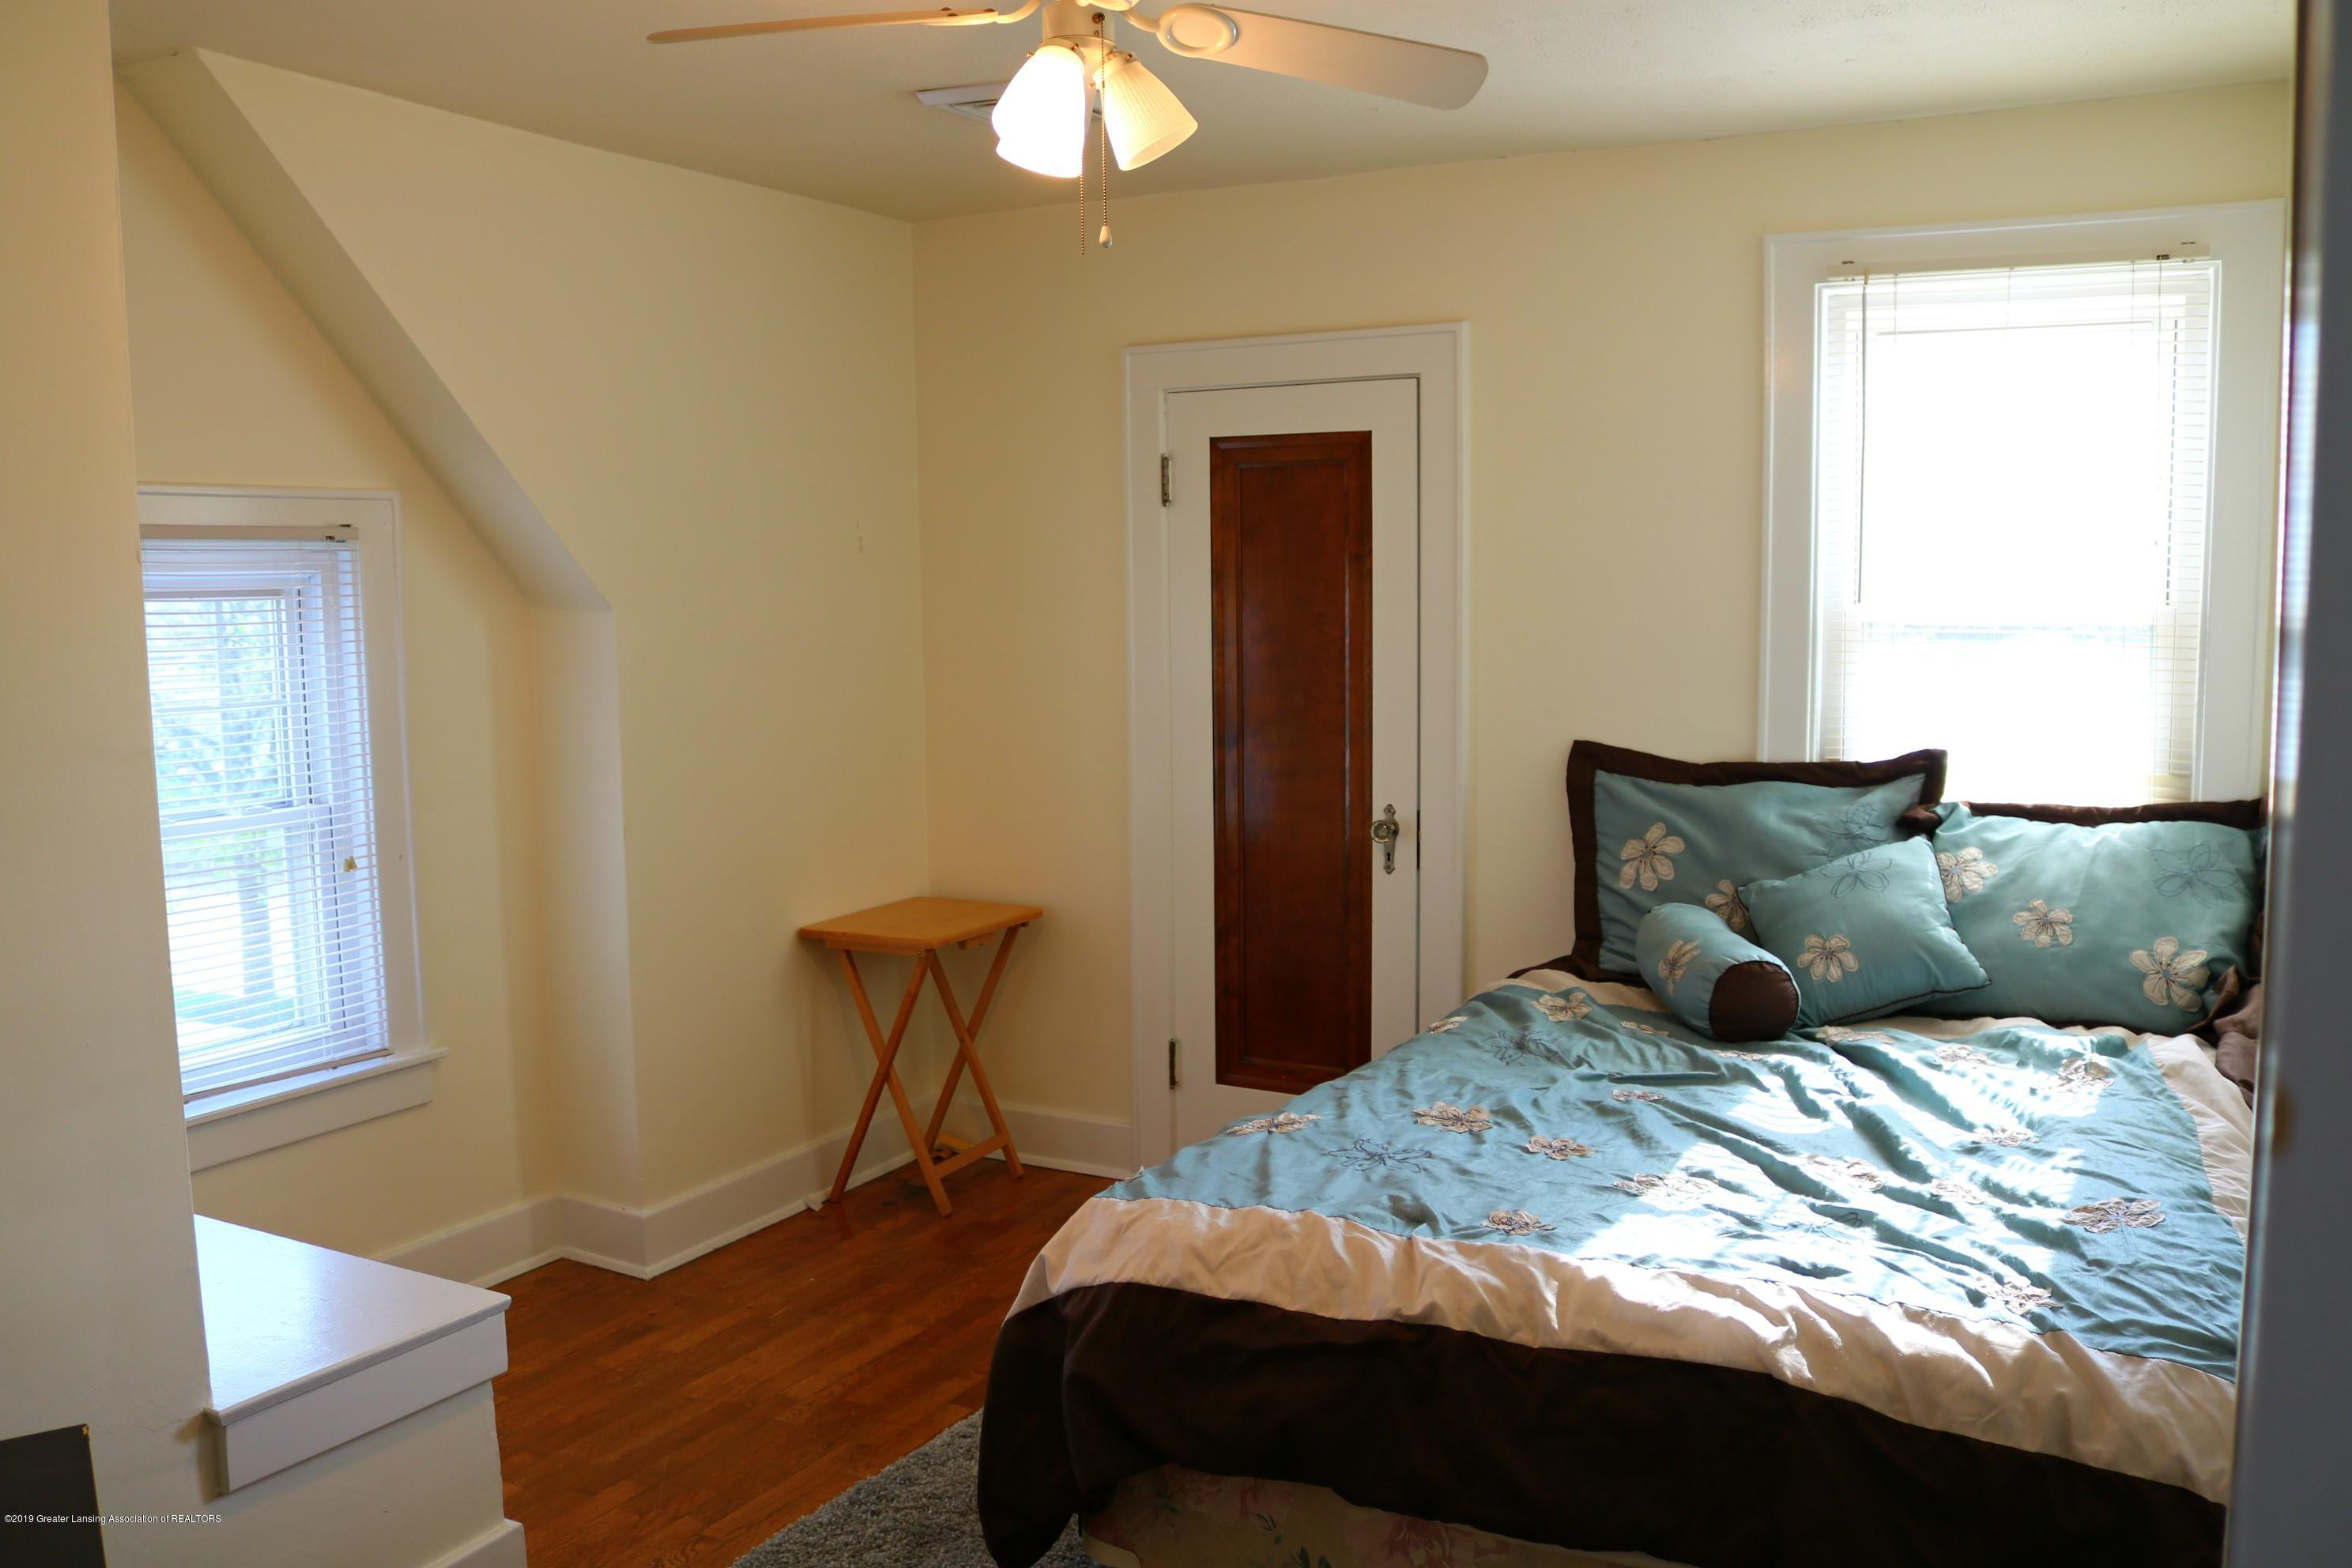 703 N Magnolia Ave - Bedroom 1 - 10